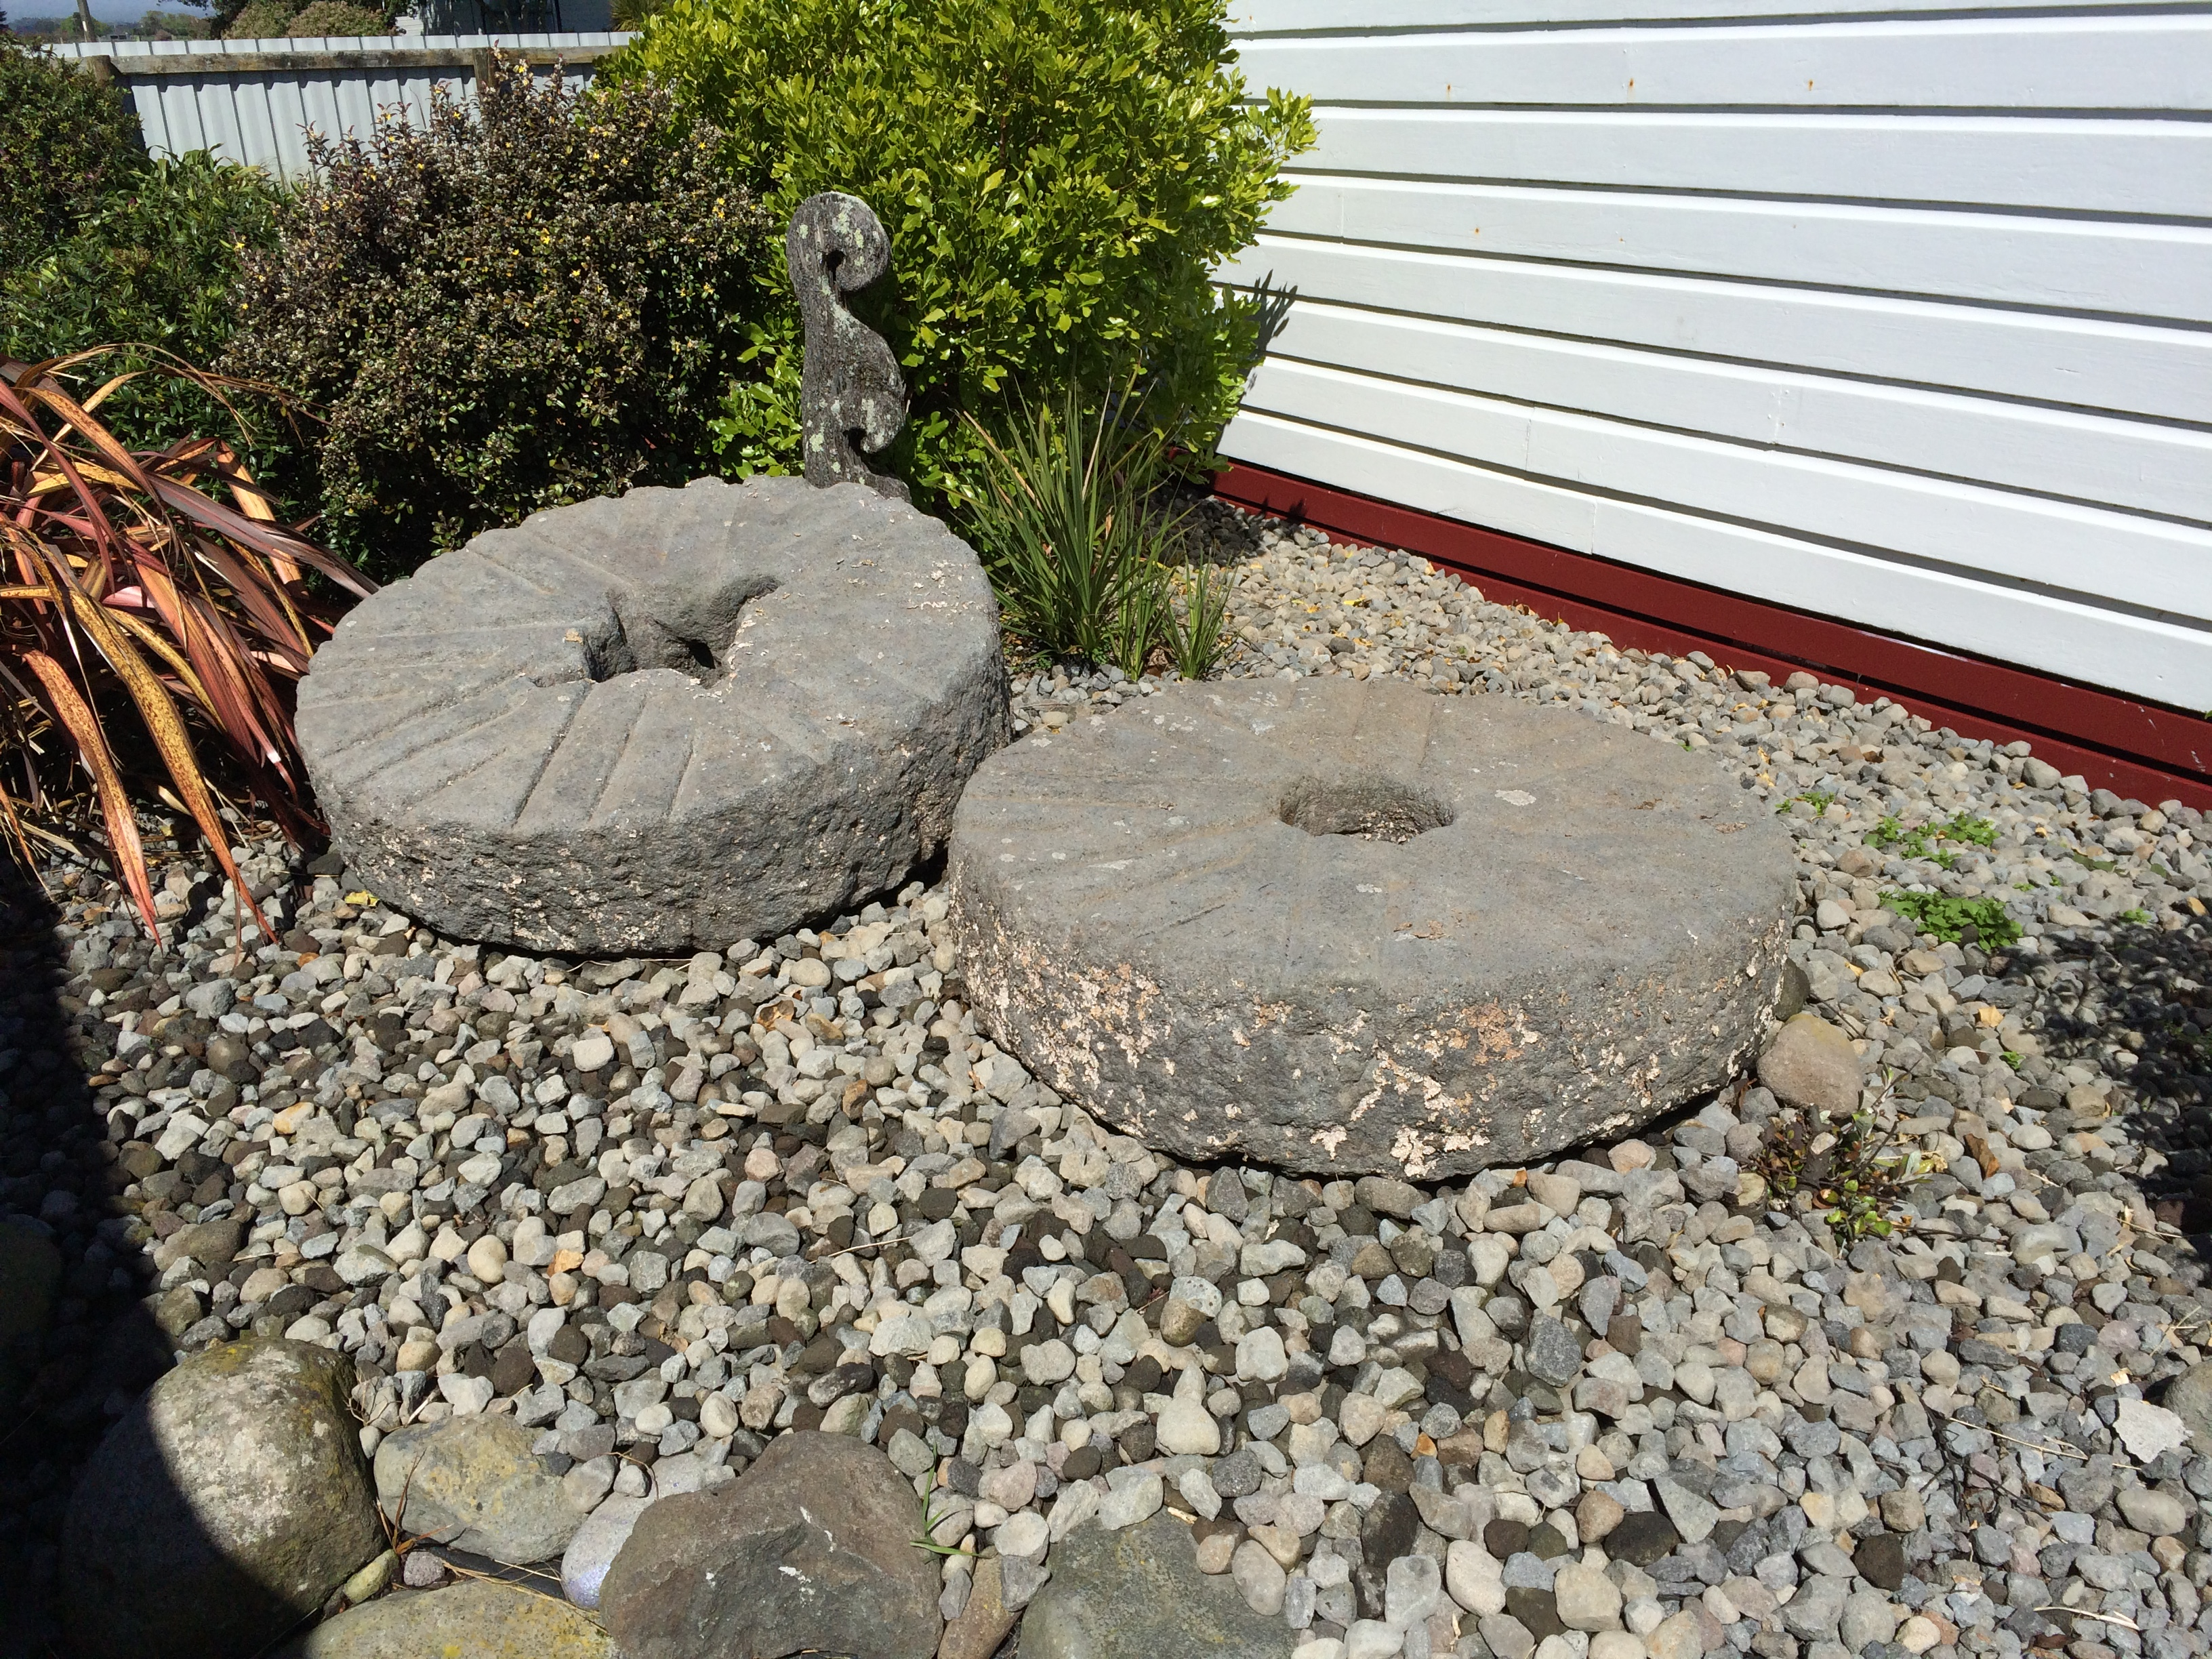 Mill stones at Puniho Marae